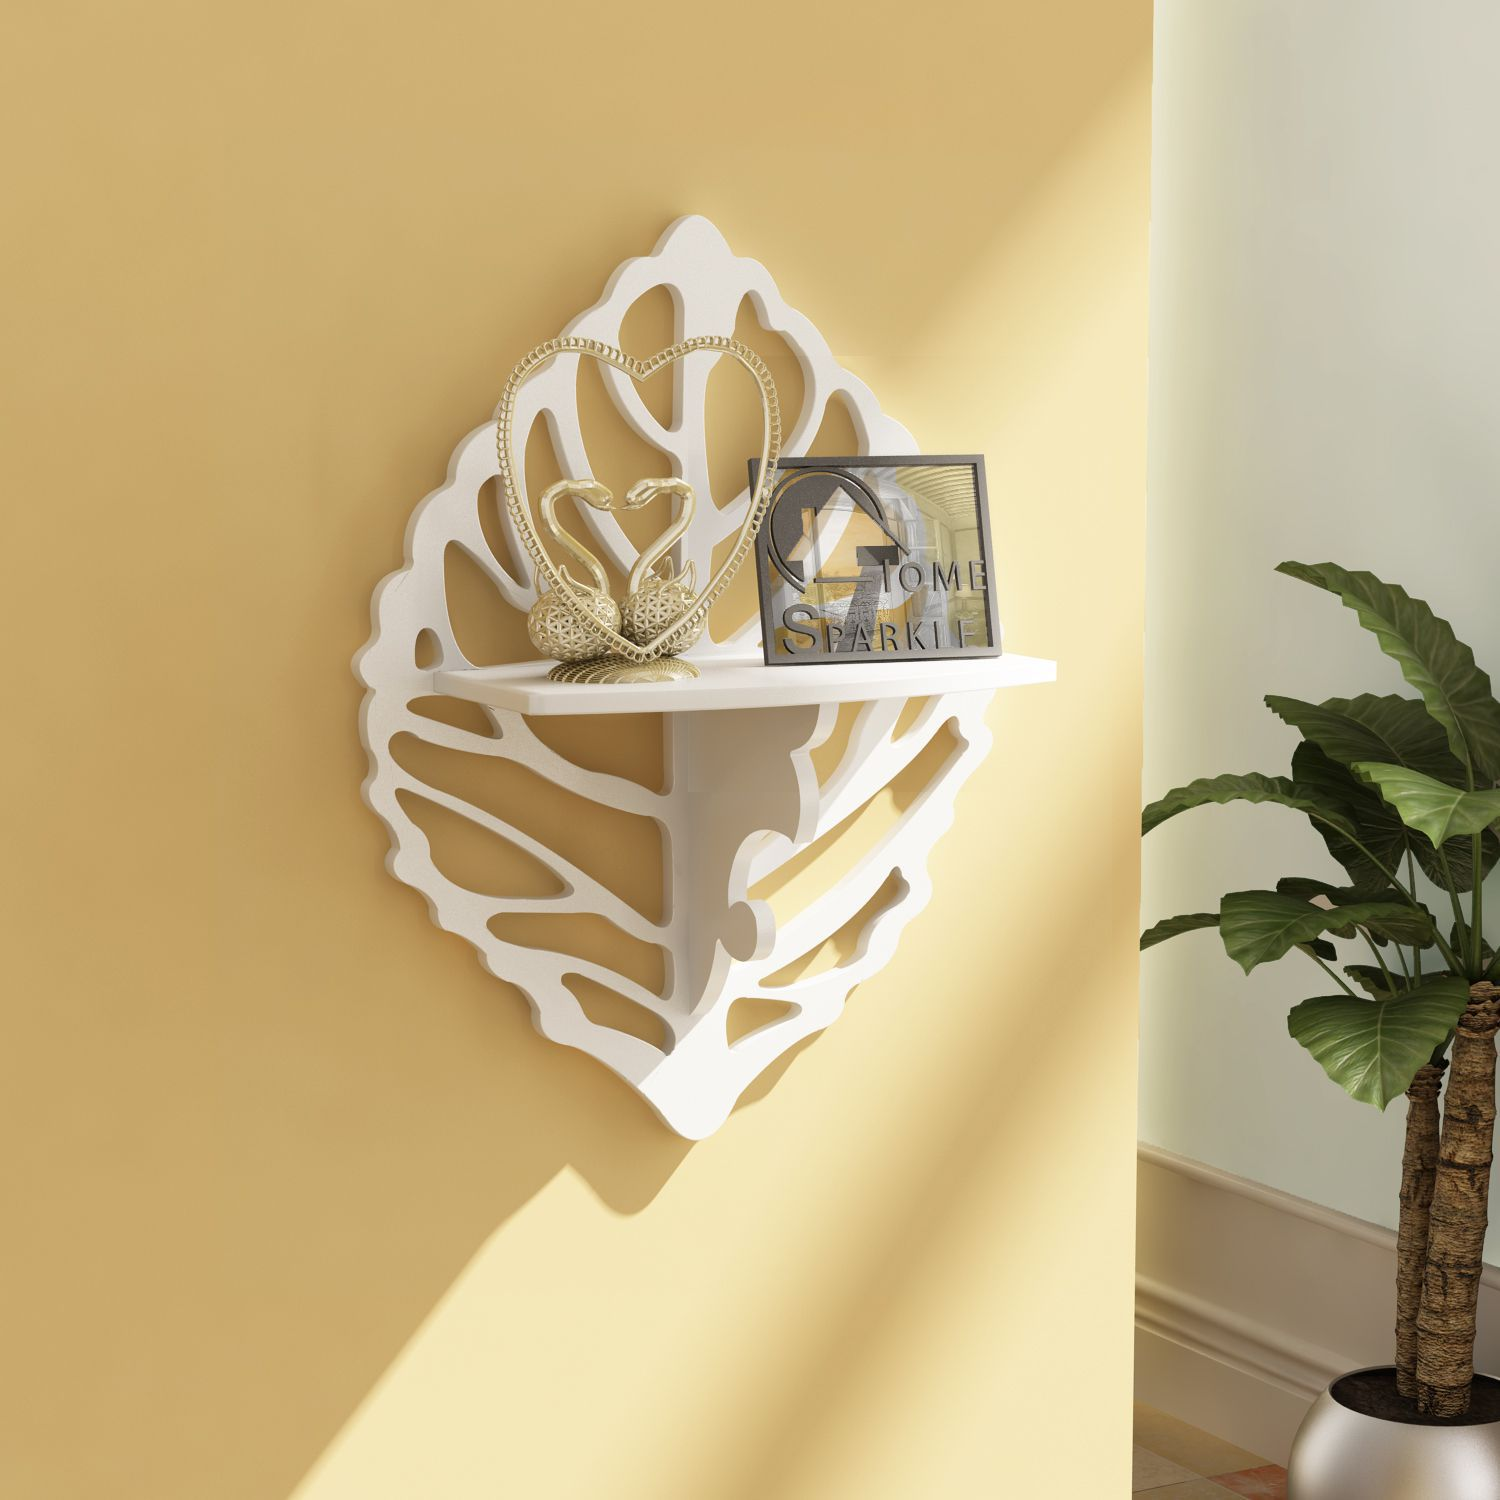 Home Sparkle MDF Carved Shelf For Wall Décor -Suitable For Living Room/Bed Room (Designed By Craftsman)